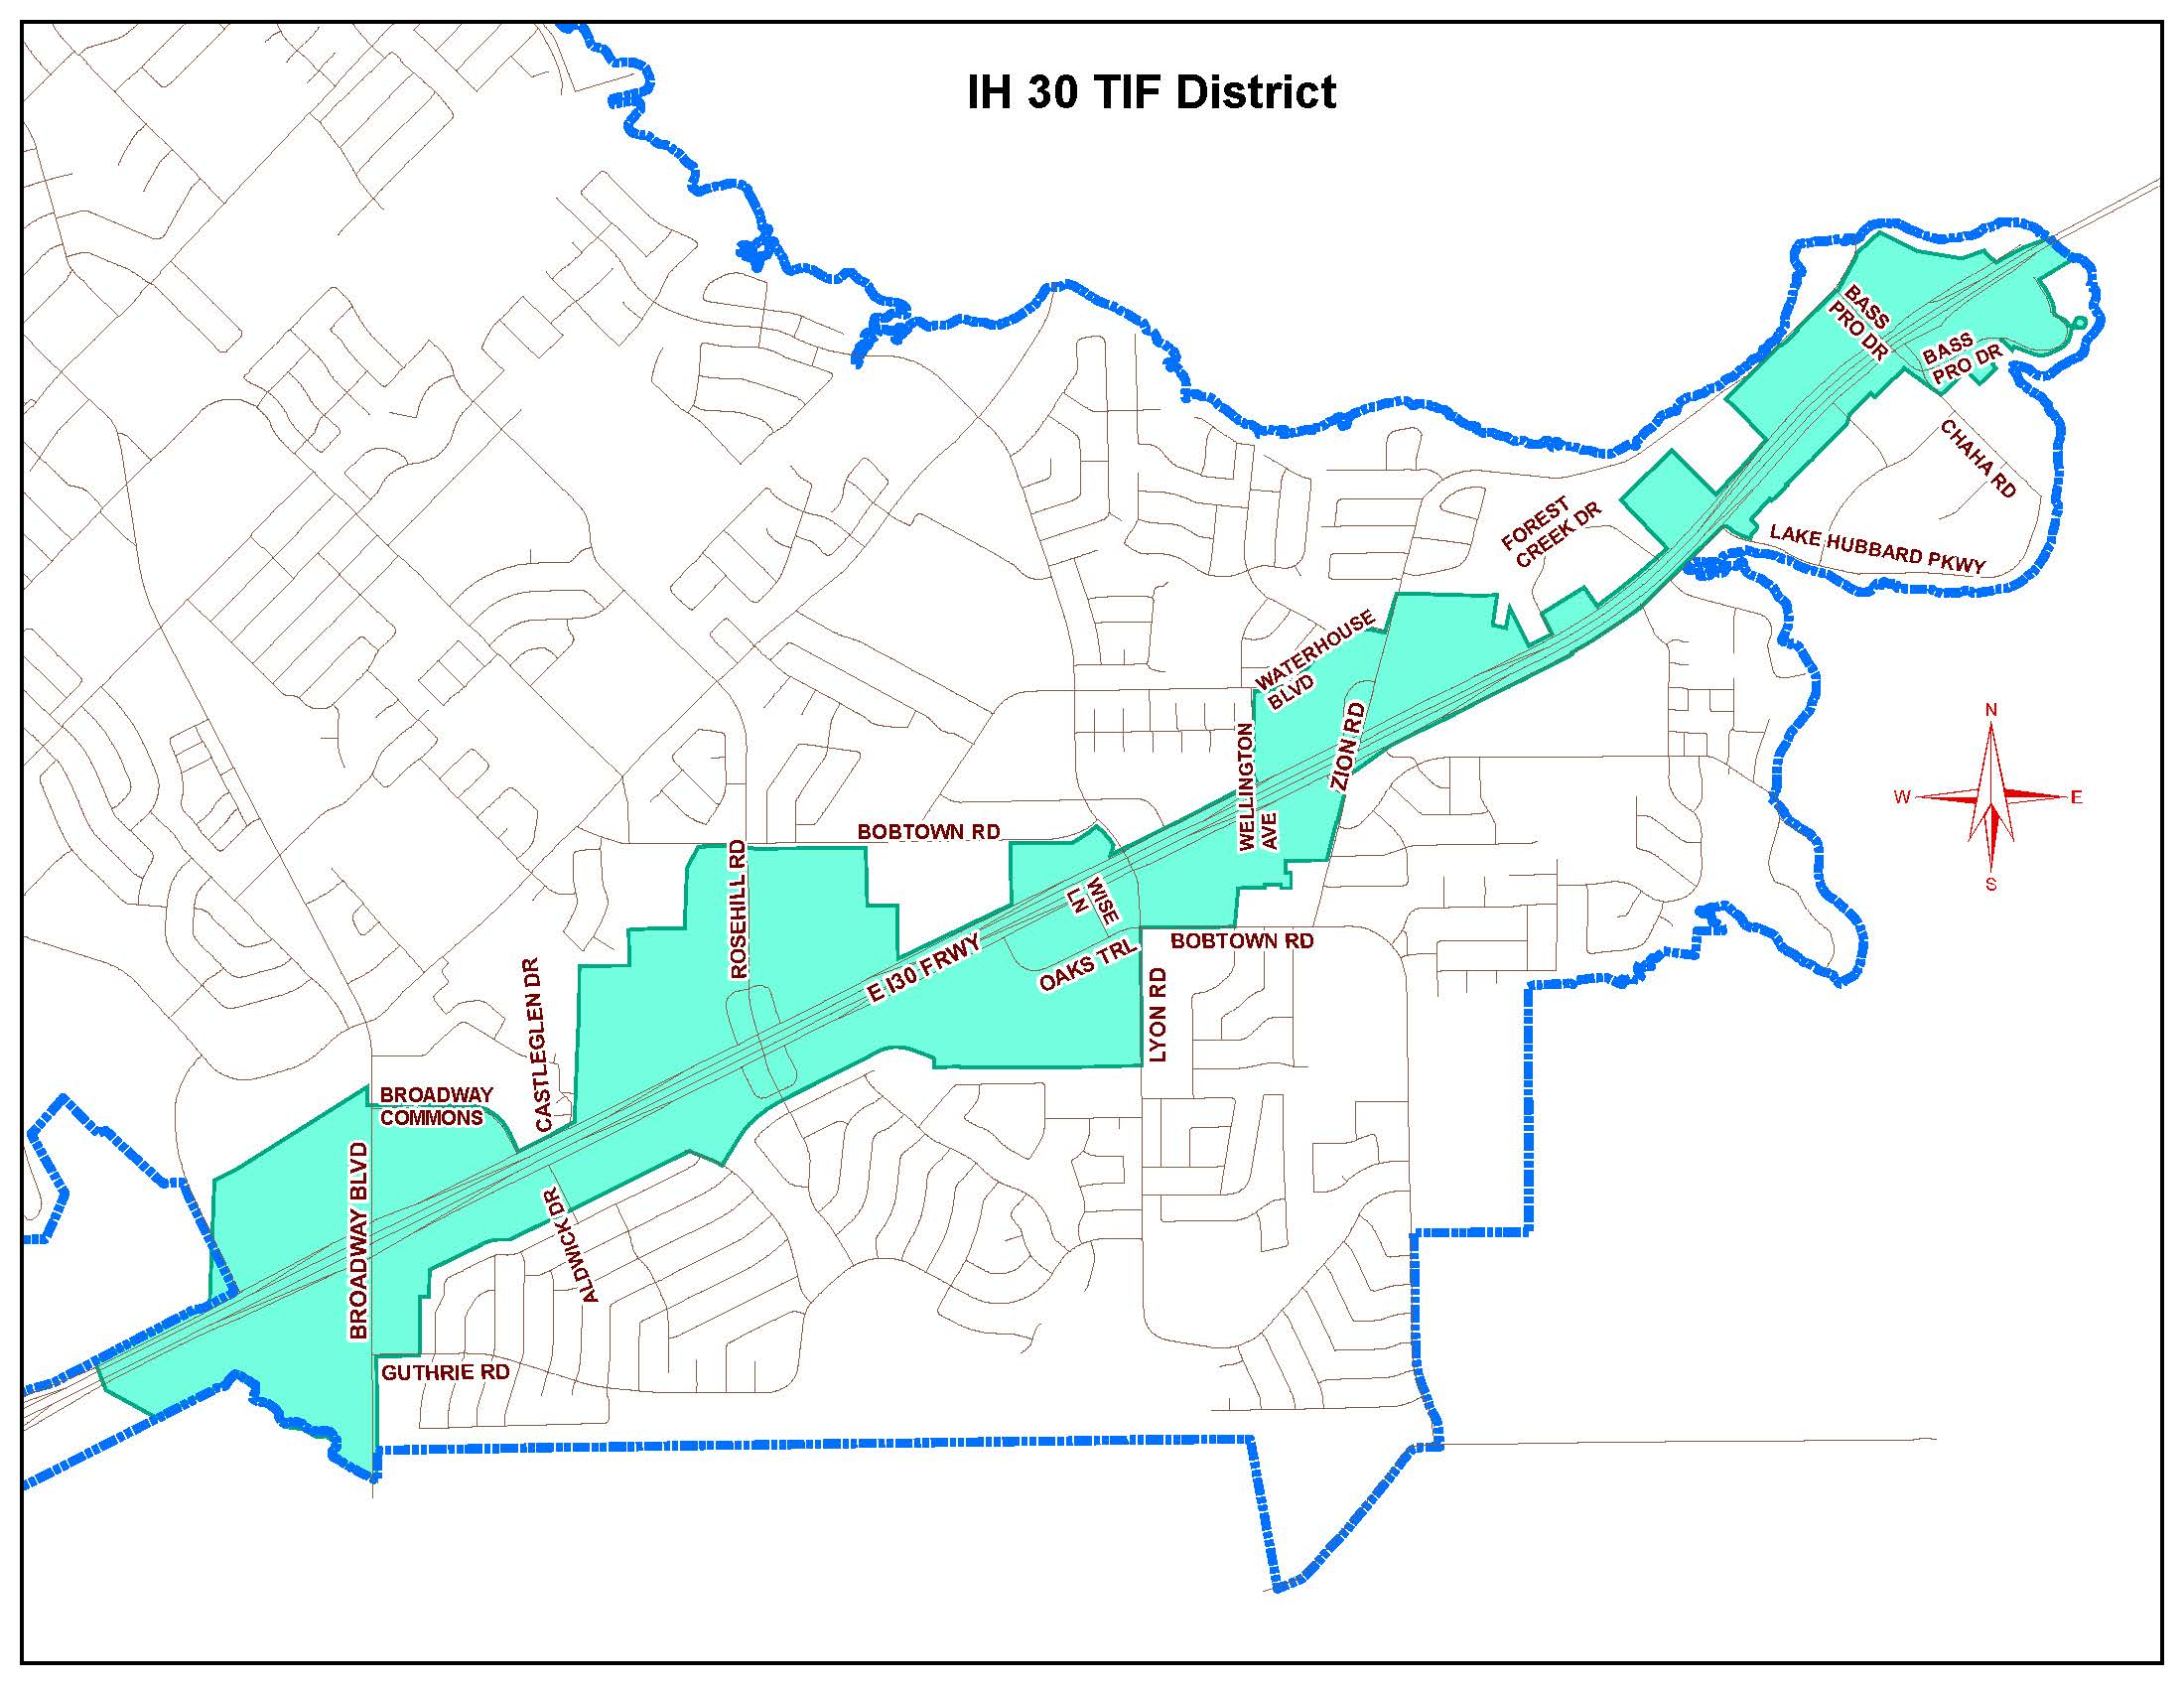 Highway 30 Tax Increment Financing District Map (JPG)